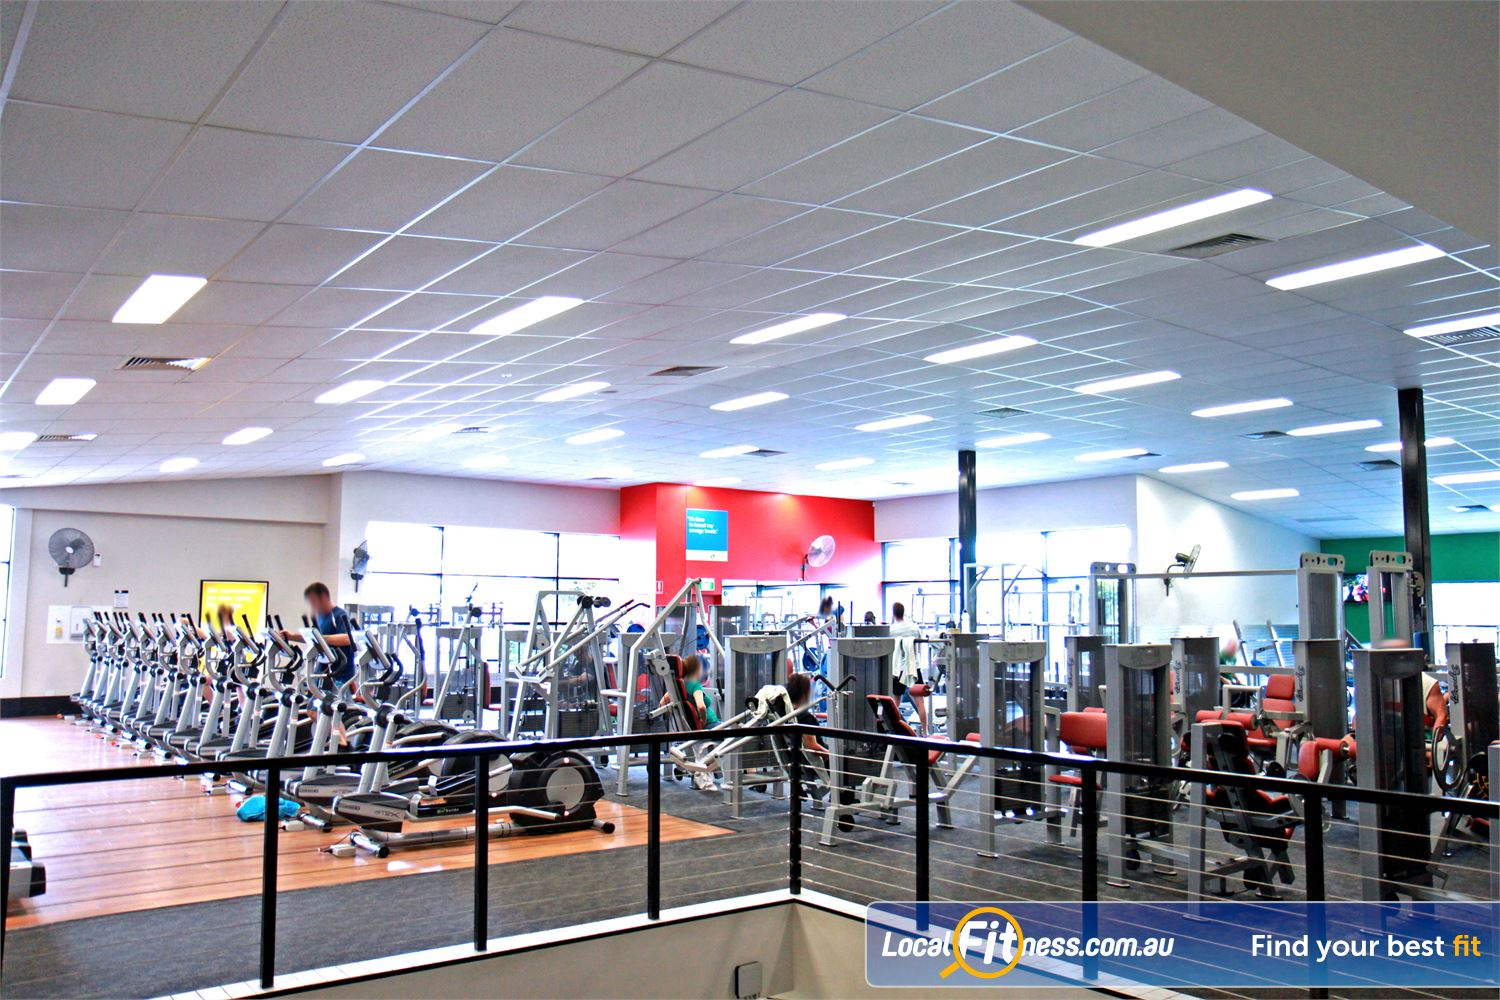 Goodlife Health Clubs Holland Park Our Goodlife Holland Park gym is a 2 storey 2200 sqm premise.